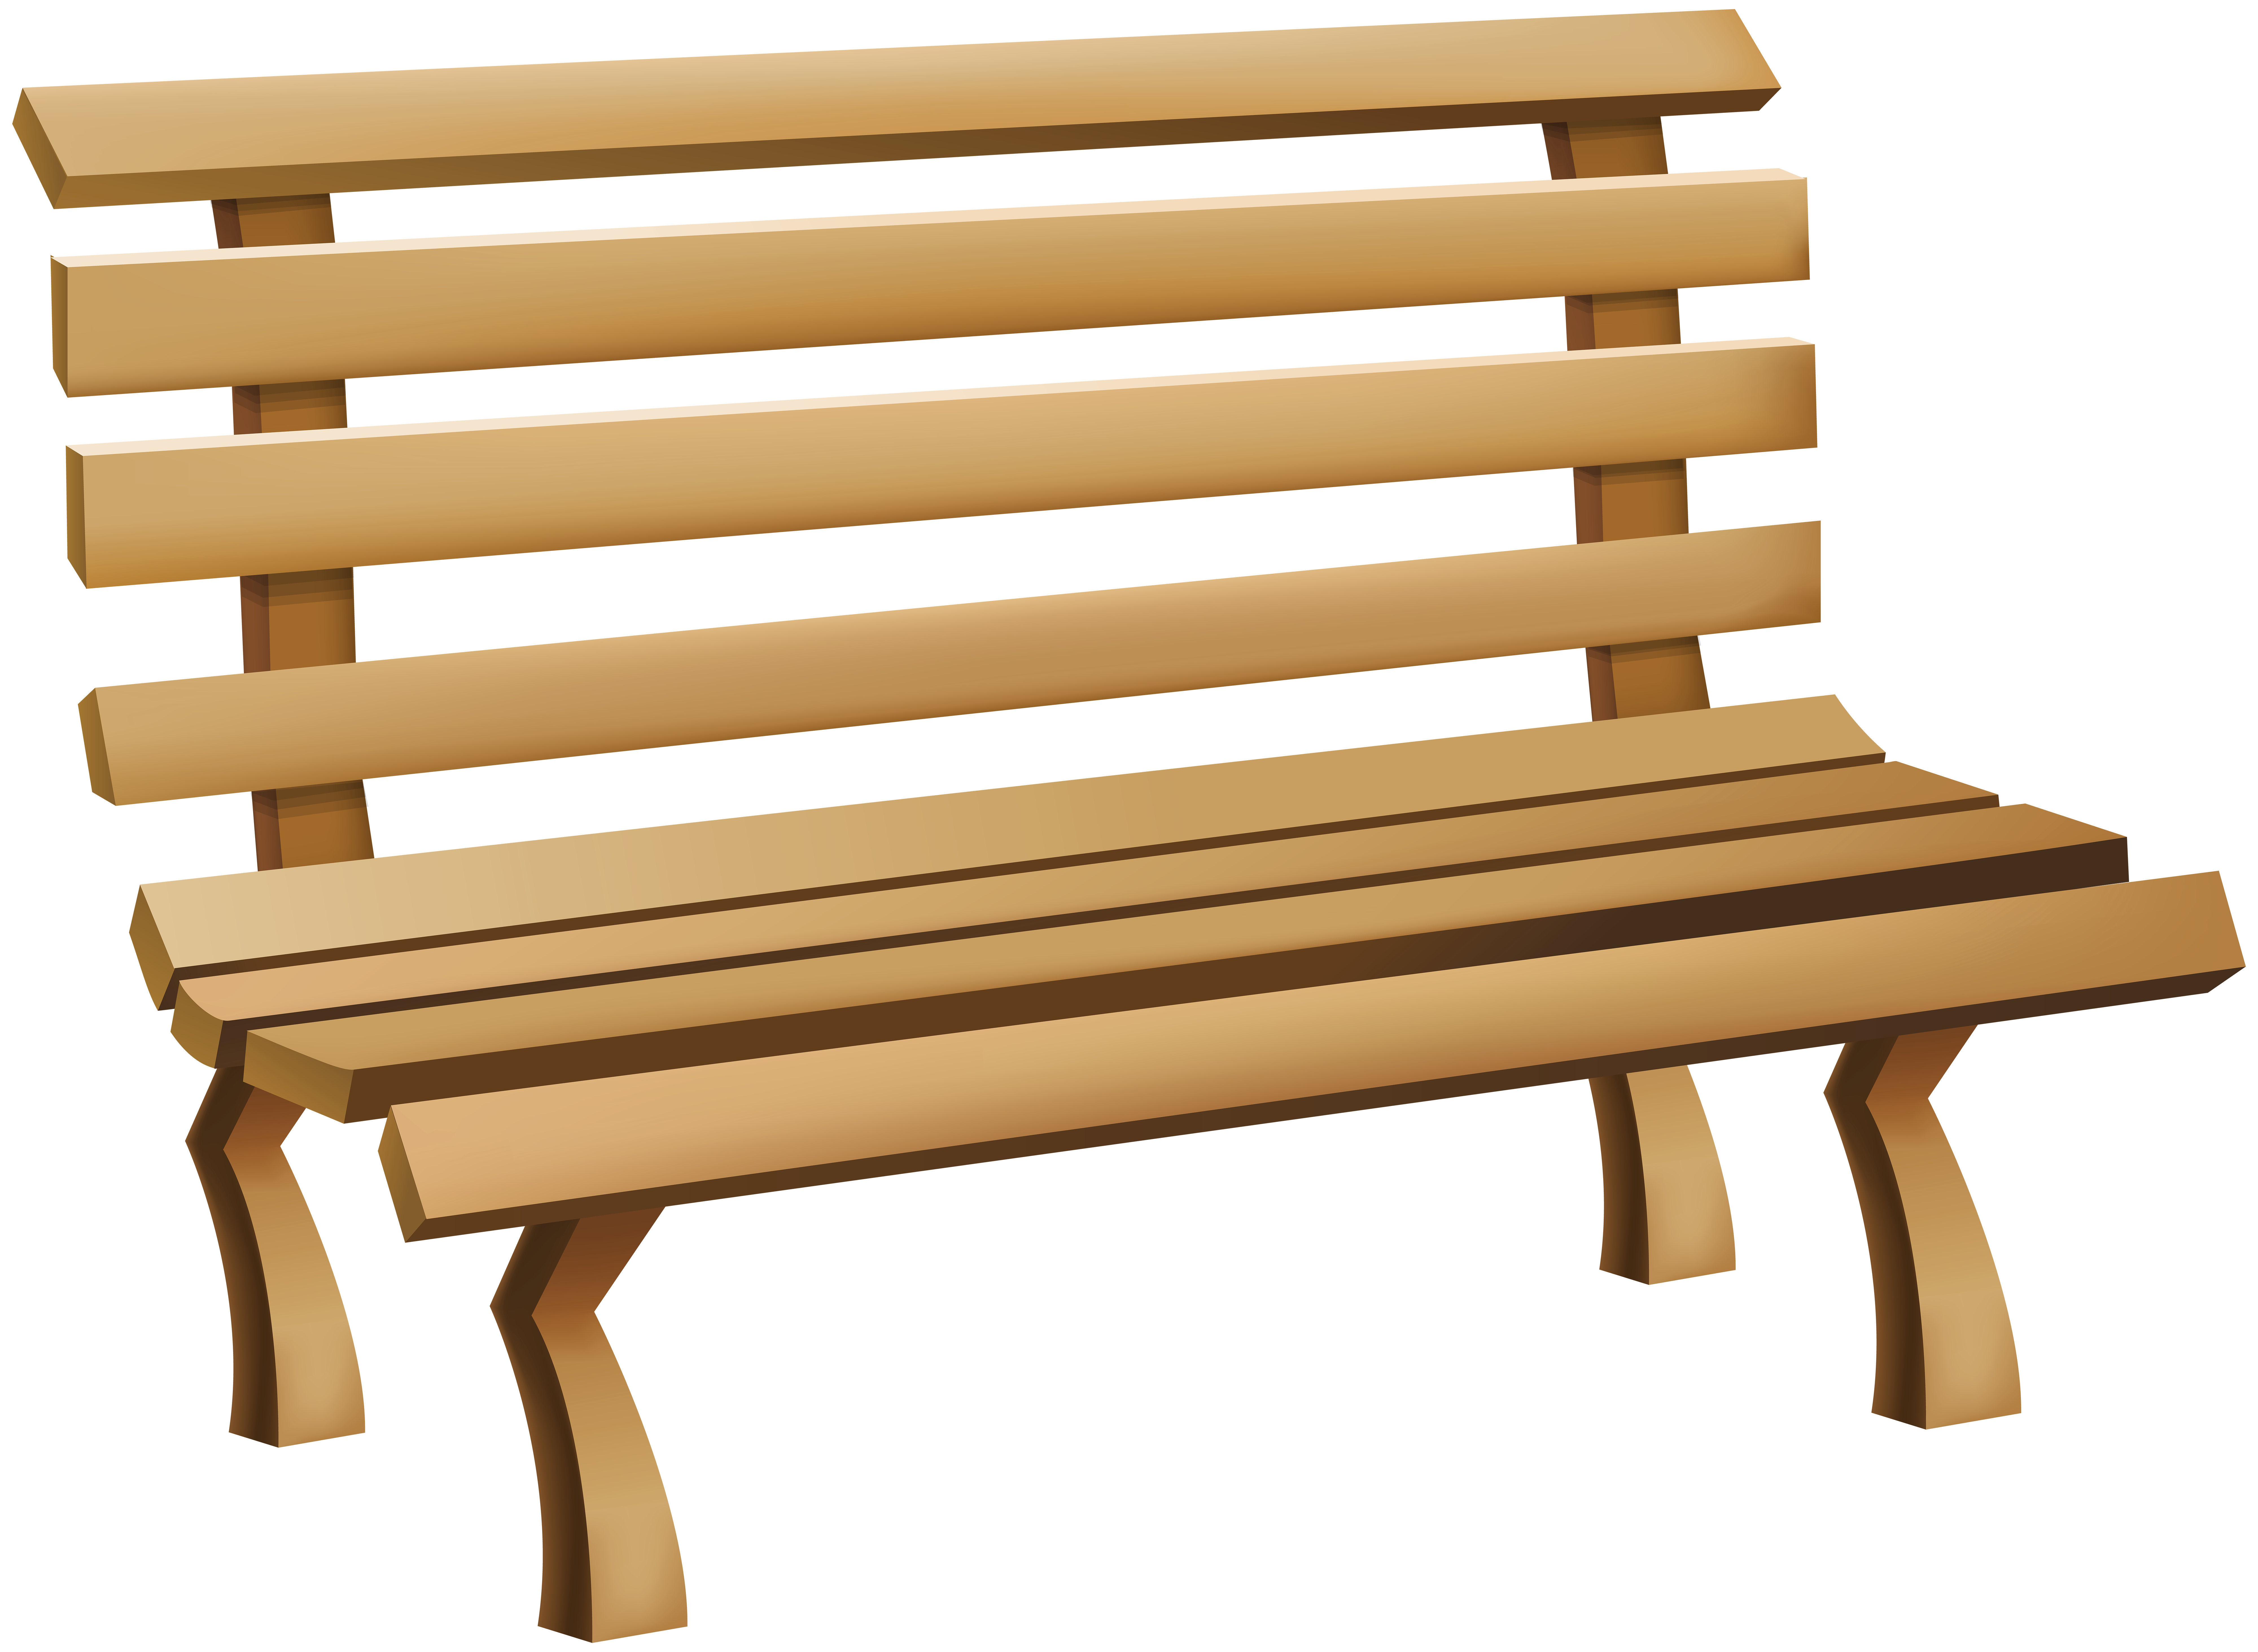 Bench clipart. Png clip art image